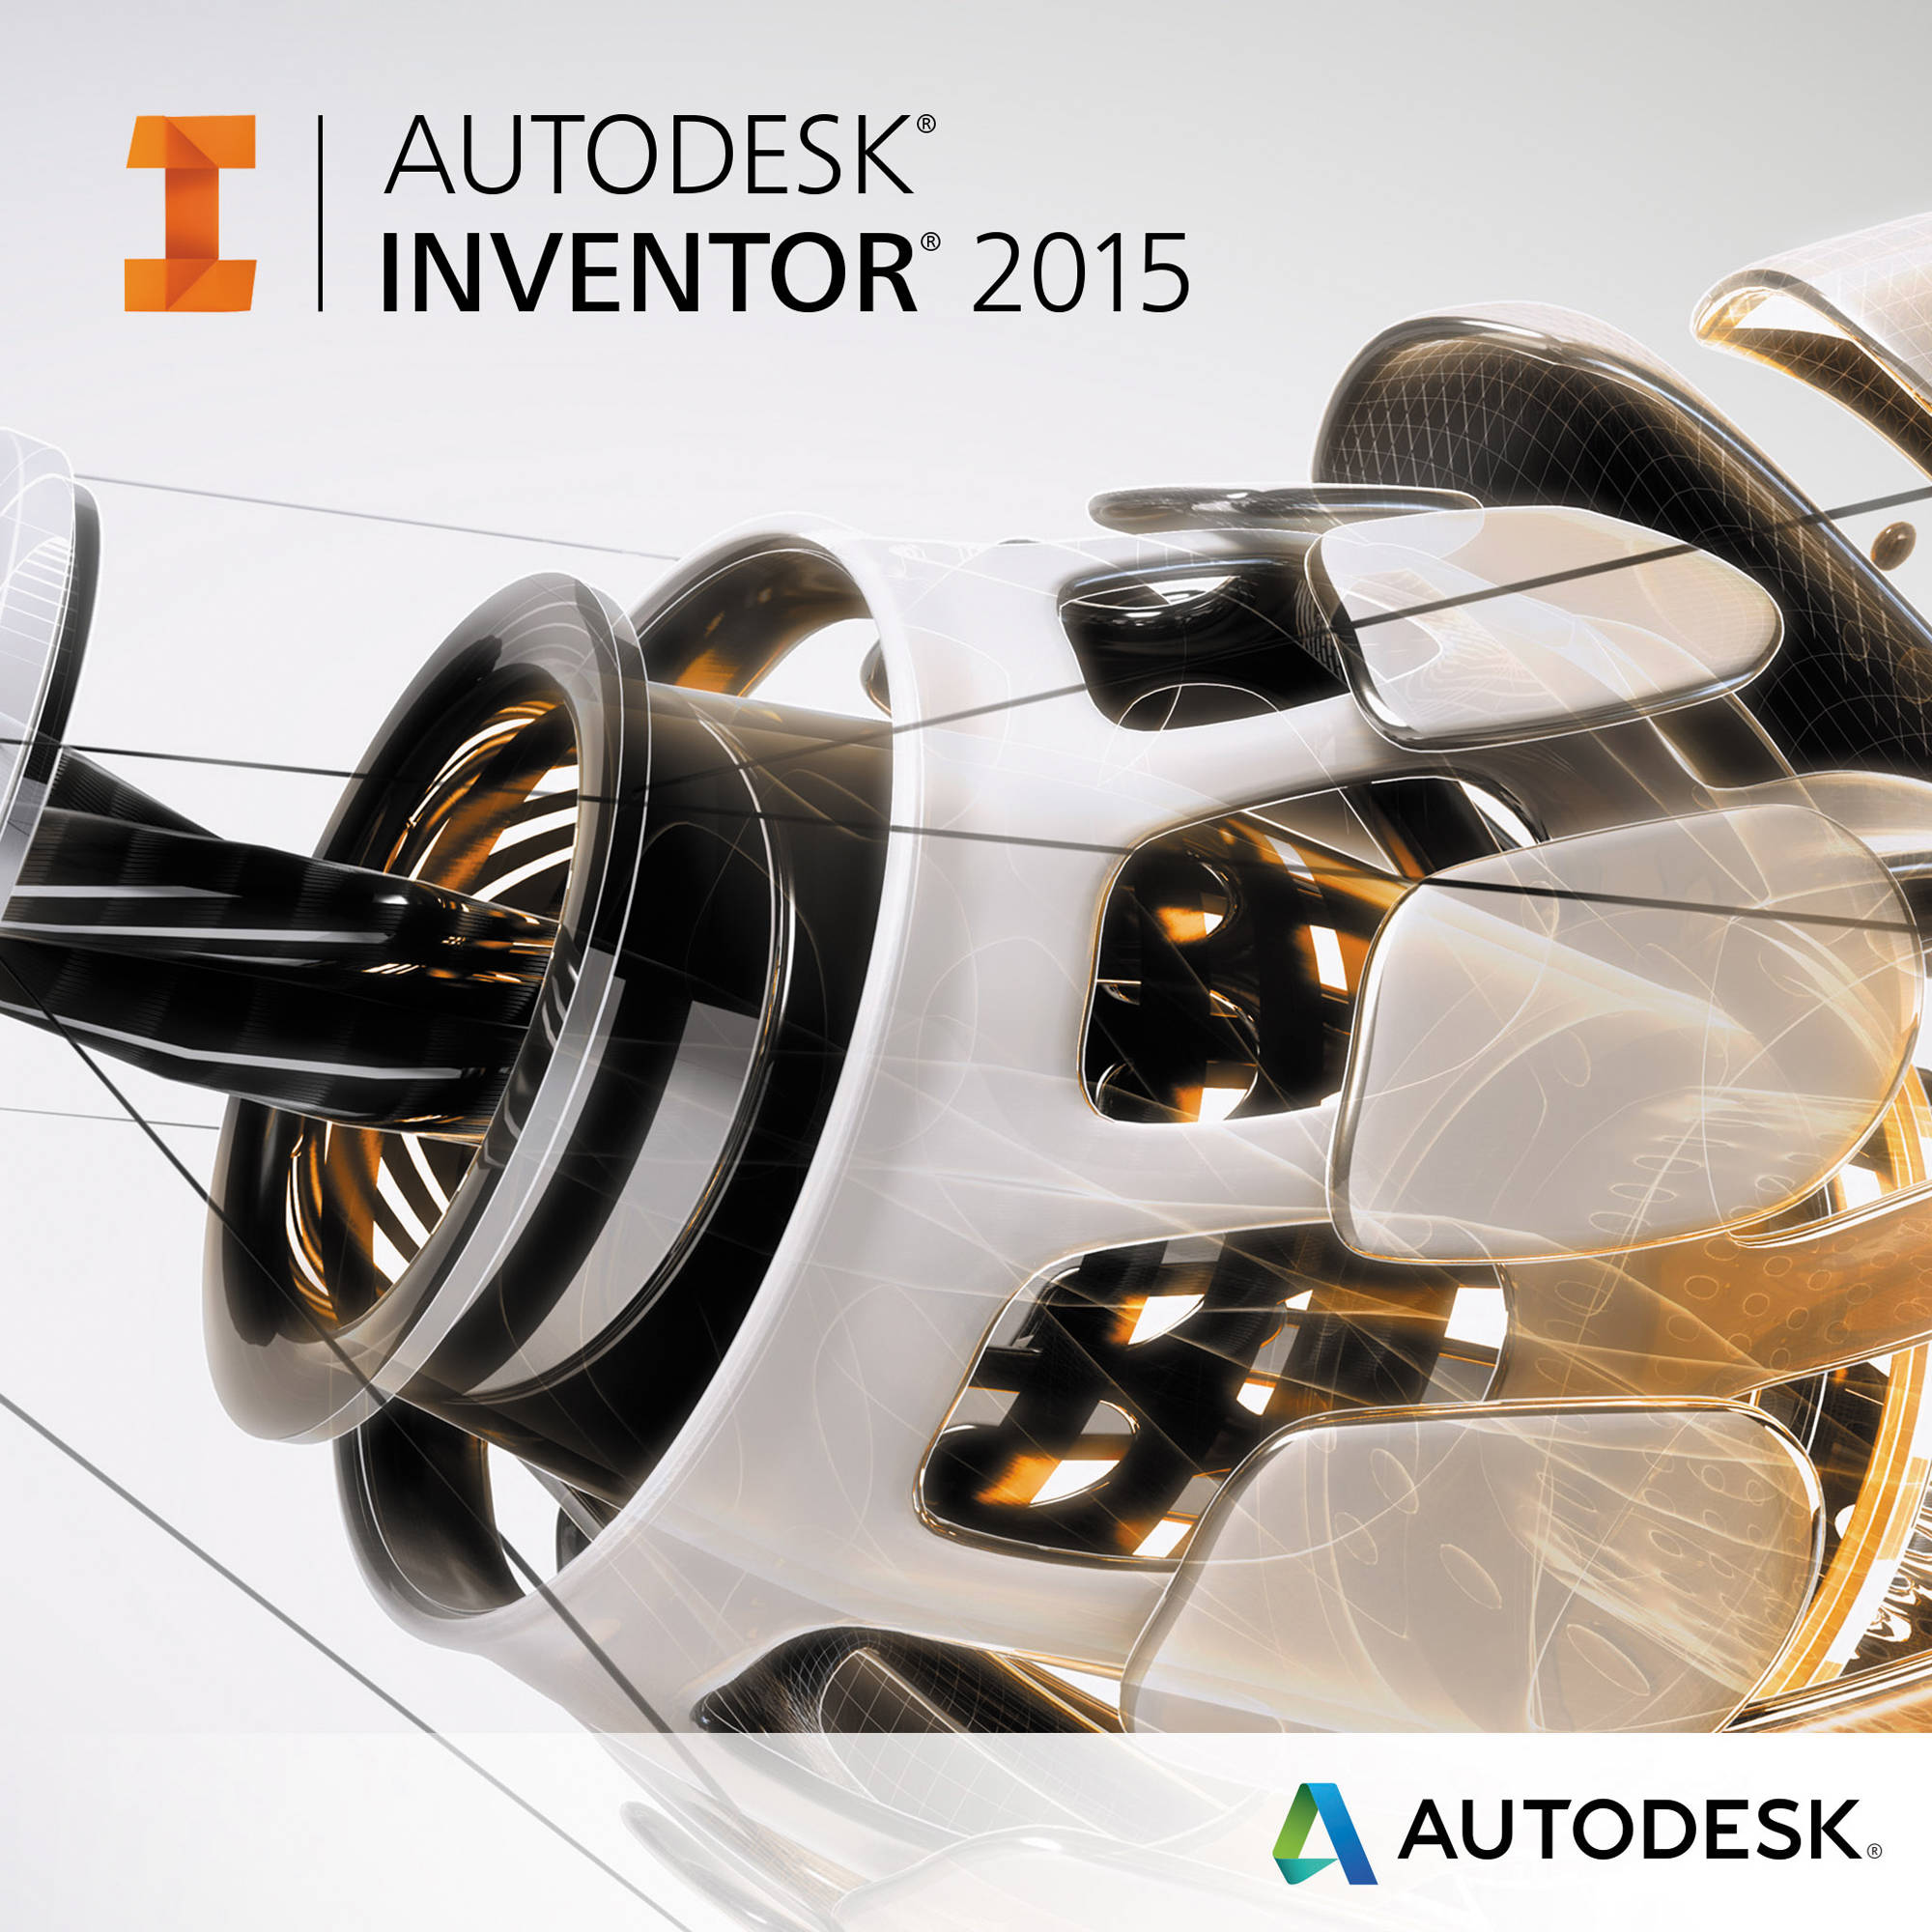 Autodesk Inventor 2015 (Download)